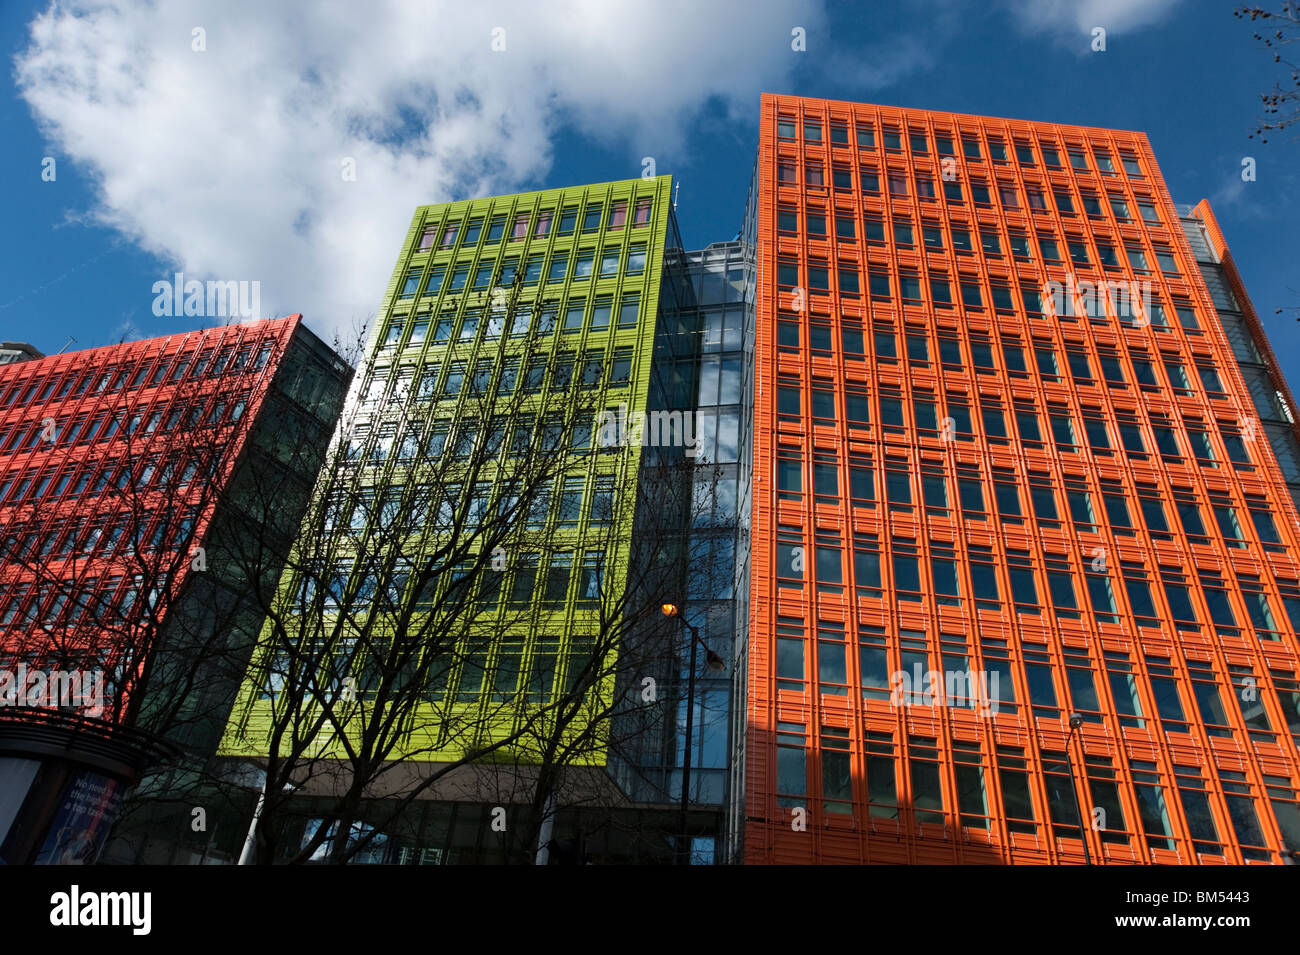 Modern architecture by Renzo Piano at Central Saint Giles, London, England, UK - Stock Image